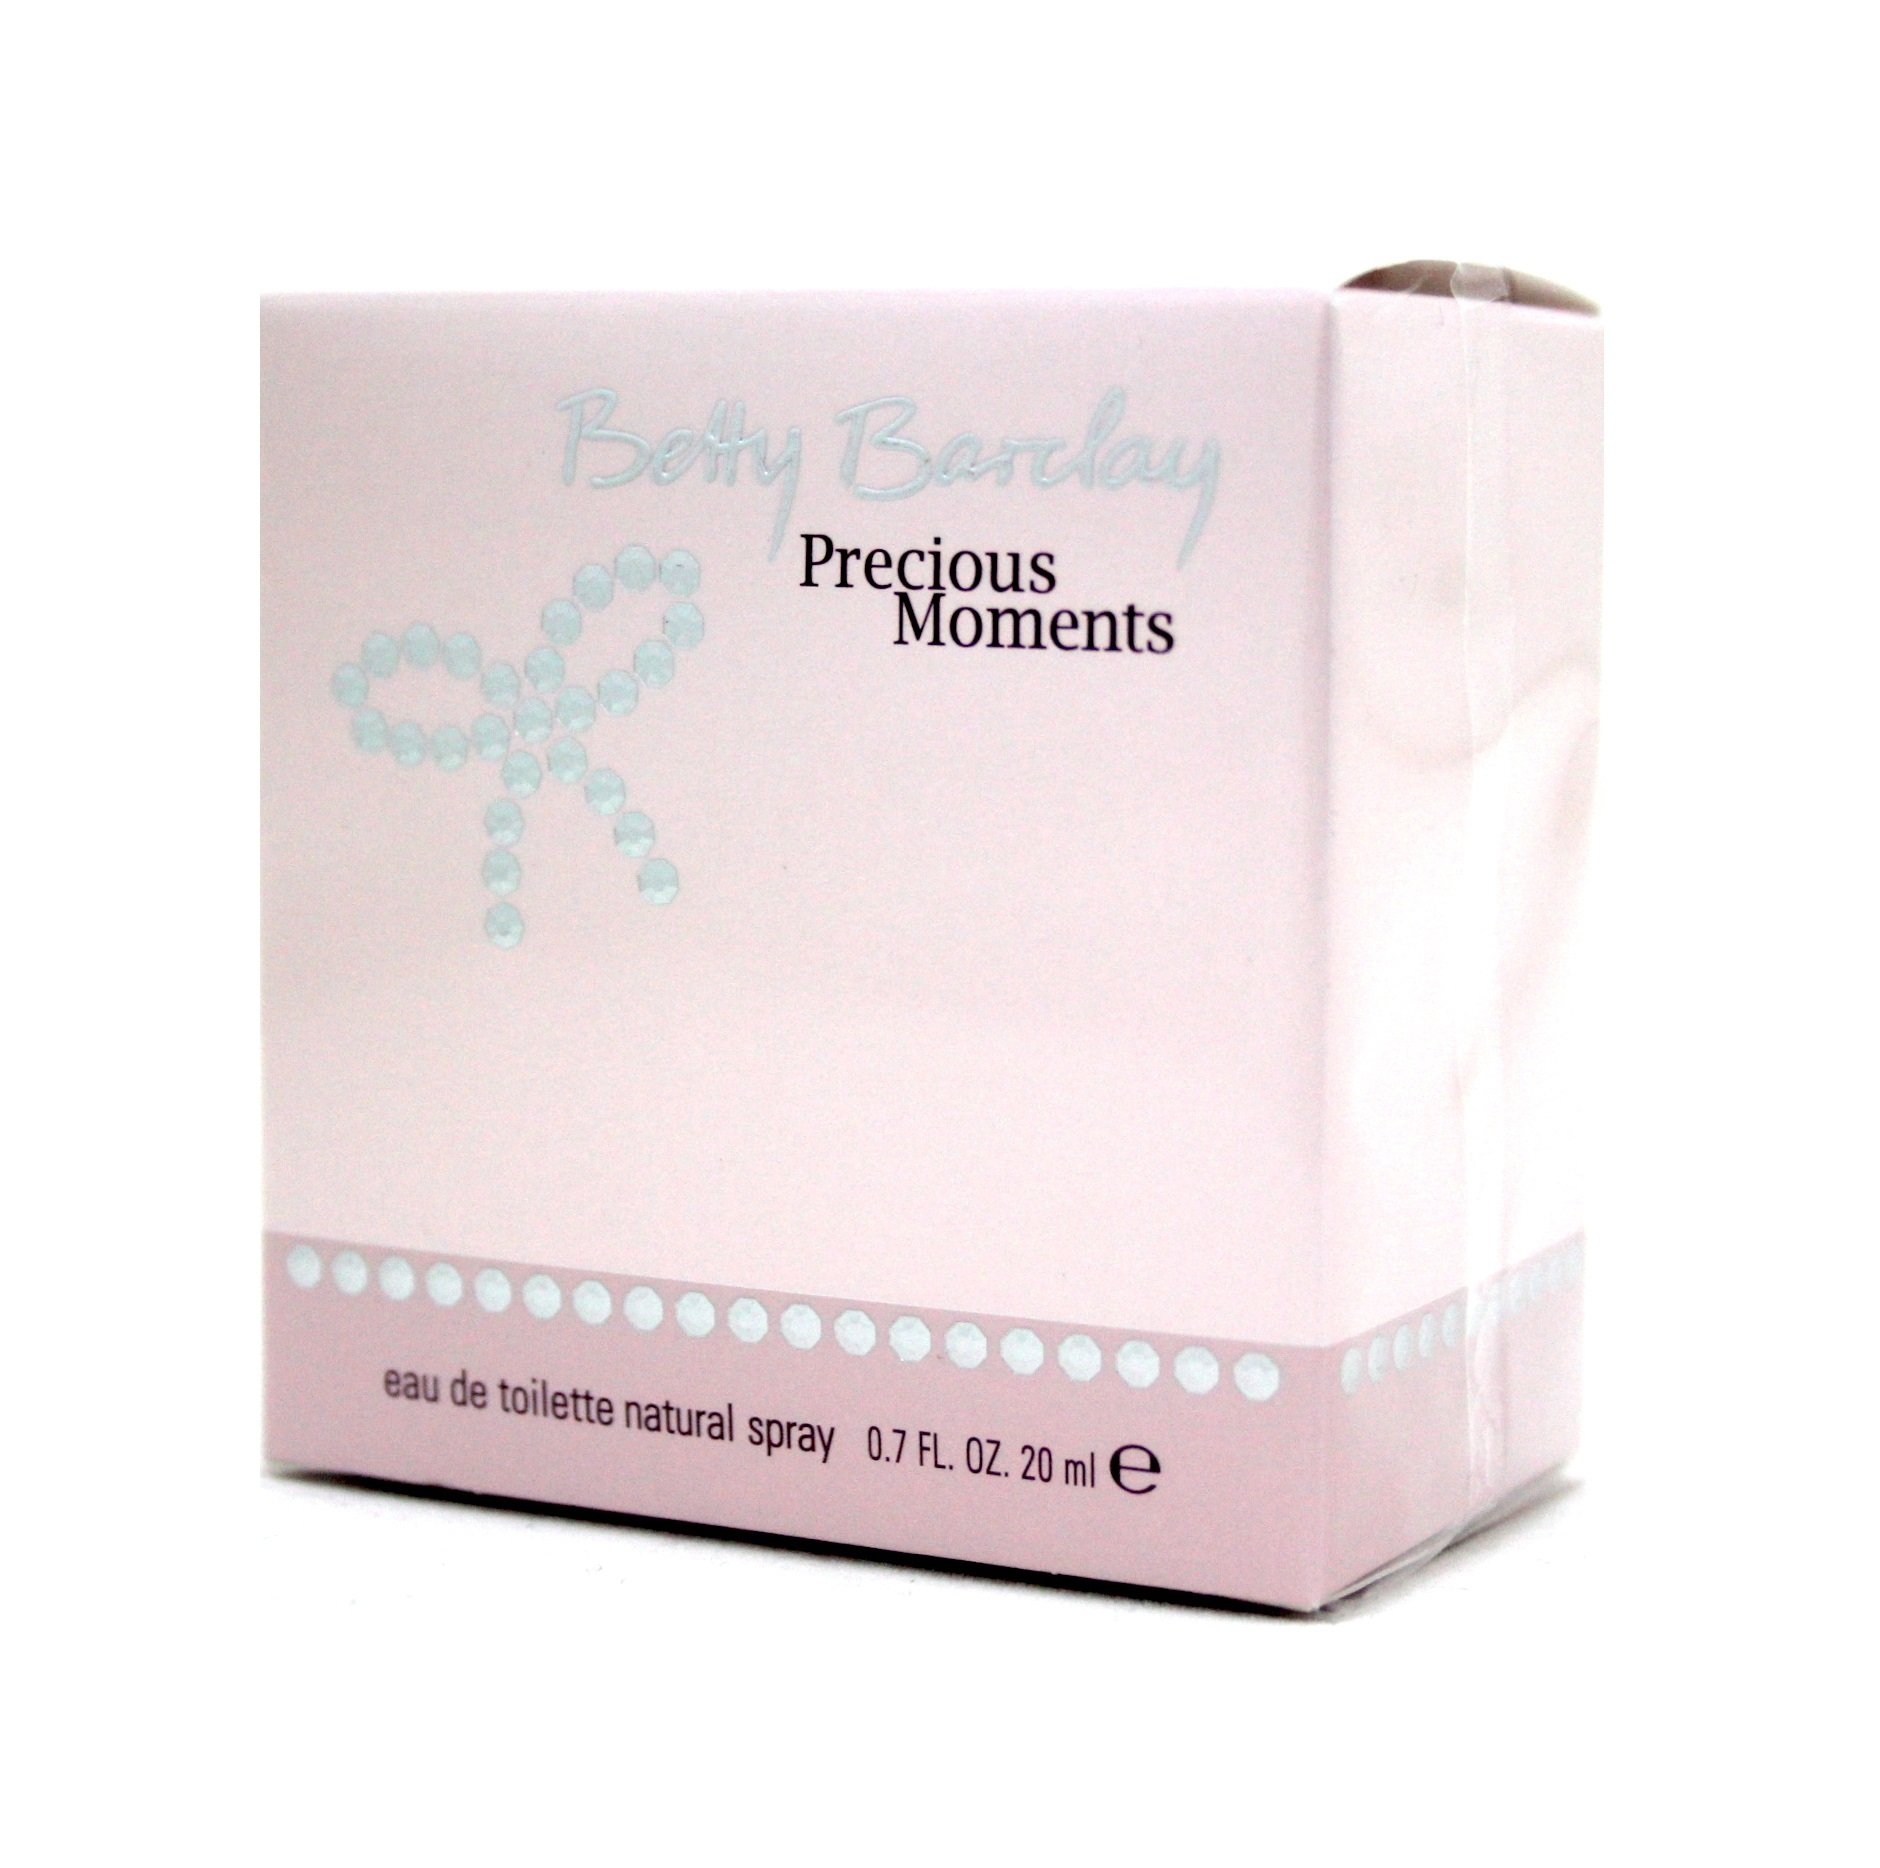 Betty Barclay Precious Moments Eau de Toilette